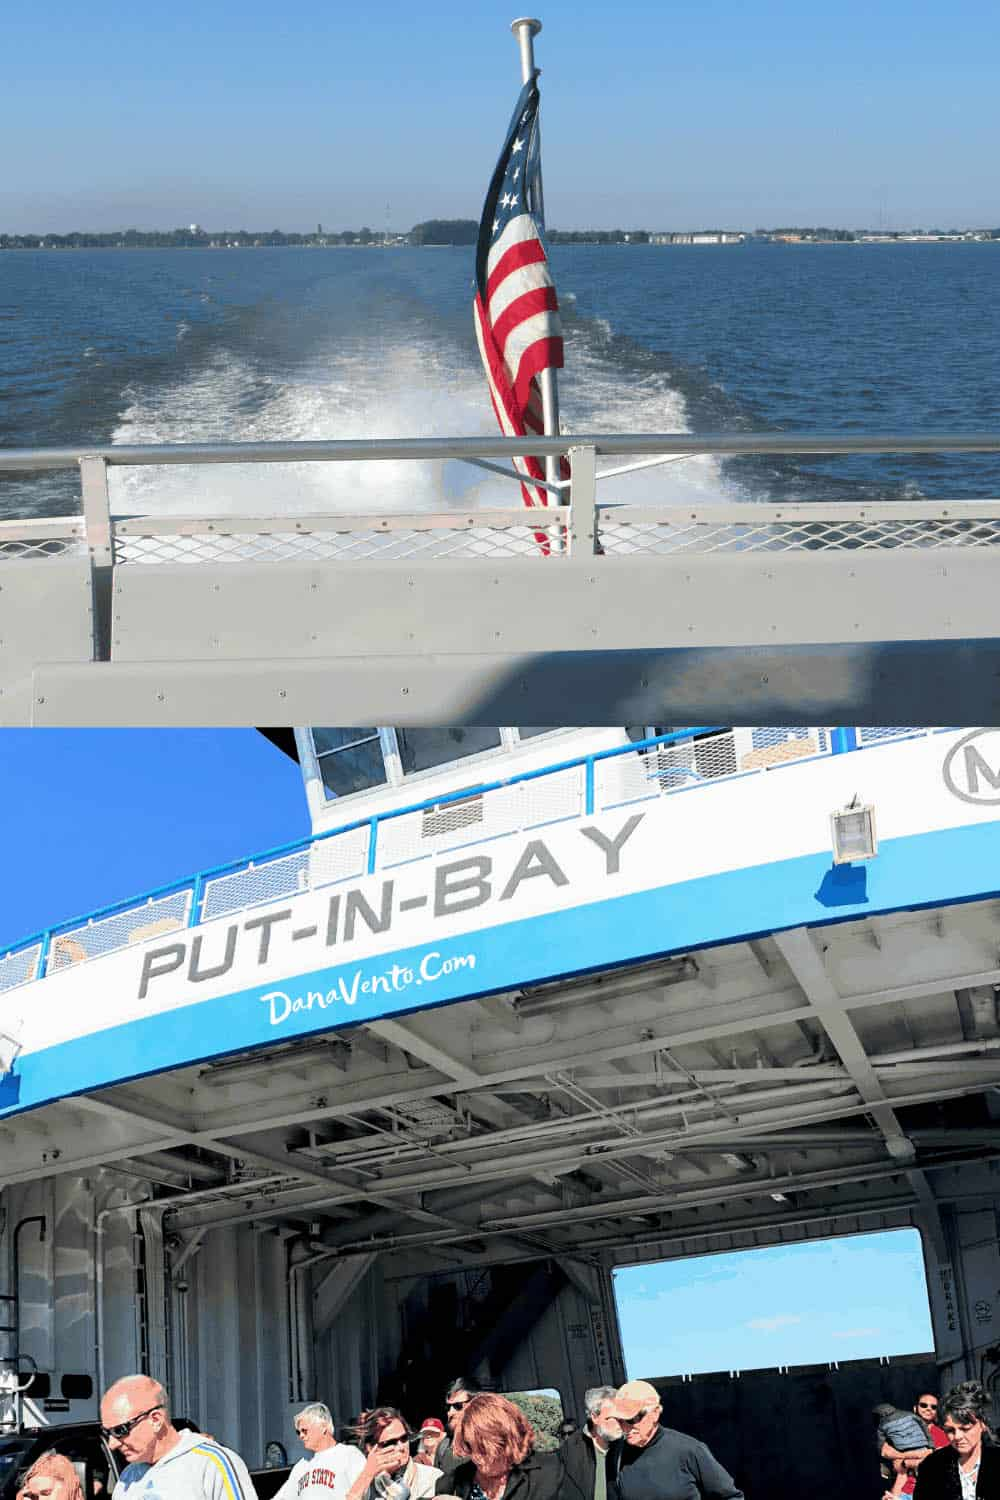 Put In Bay Jet Express and Millers Ferry